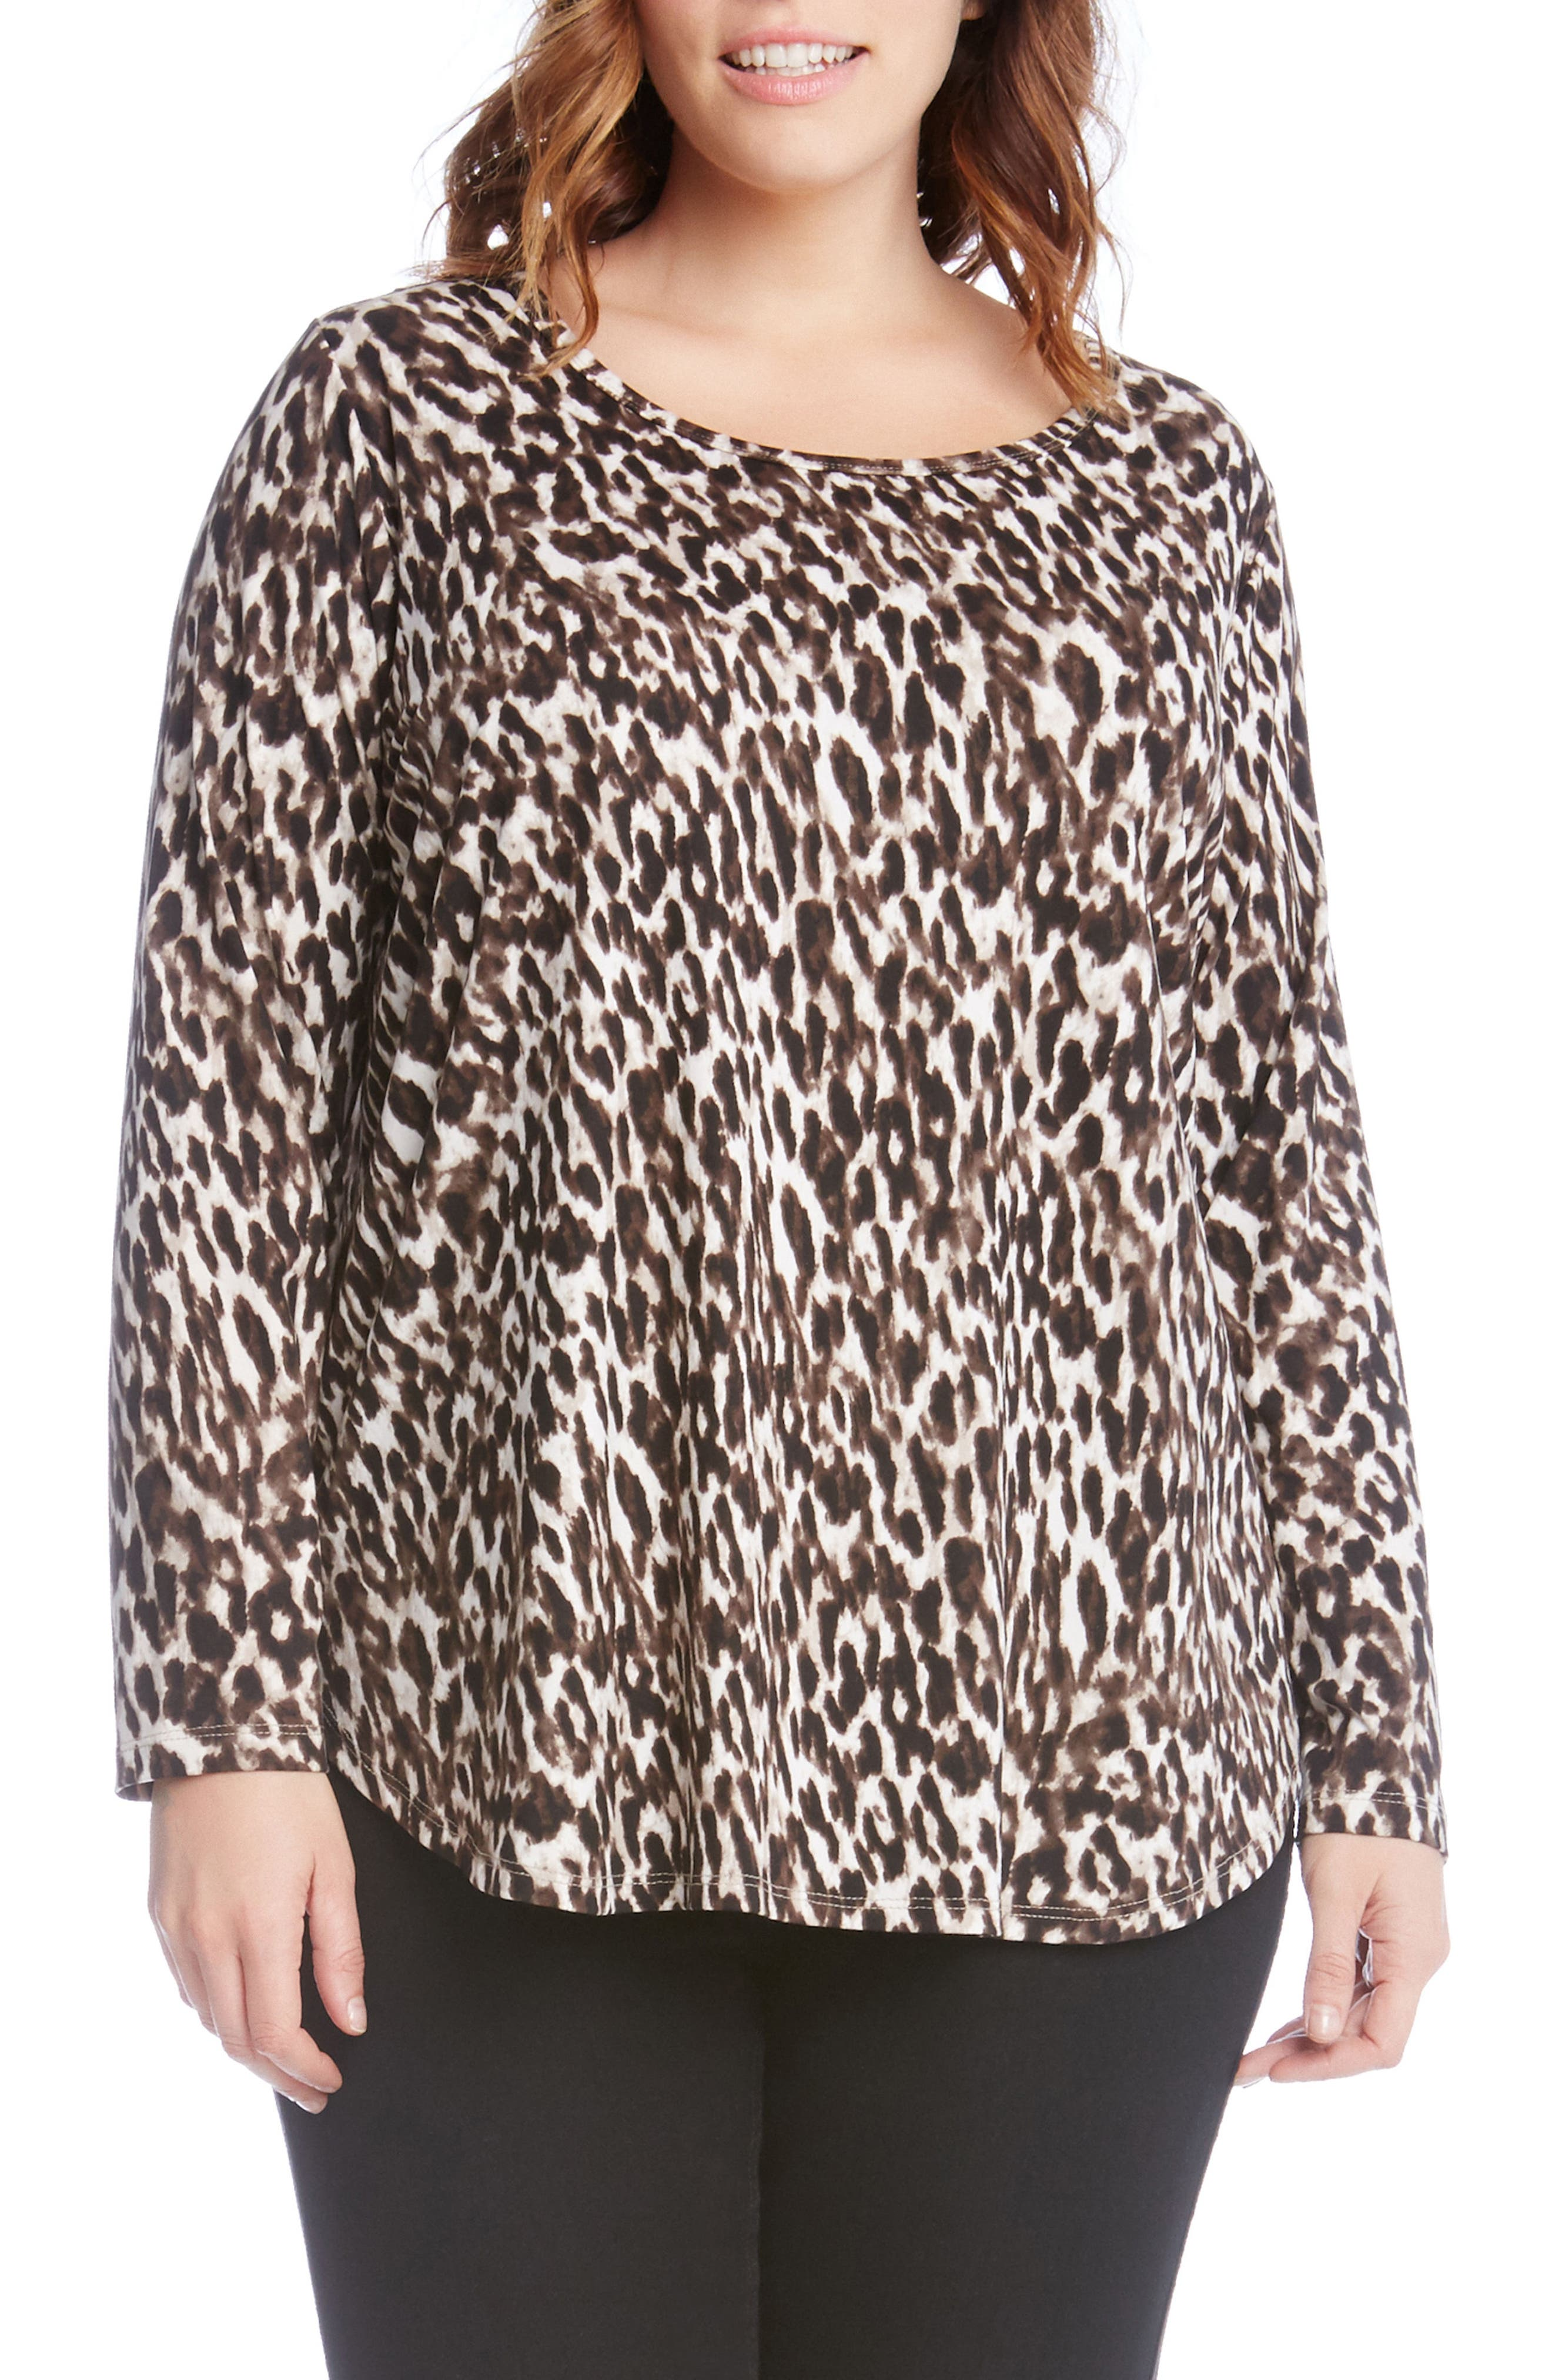 Alternate Image 1 Selected - Karen Kane Print Knit Shirttail Top (Plus Size)